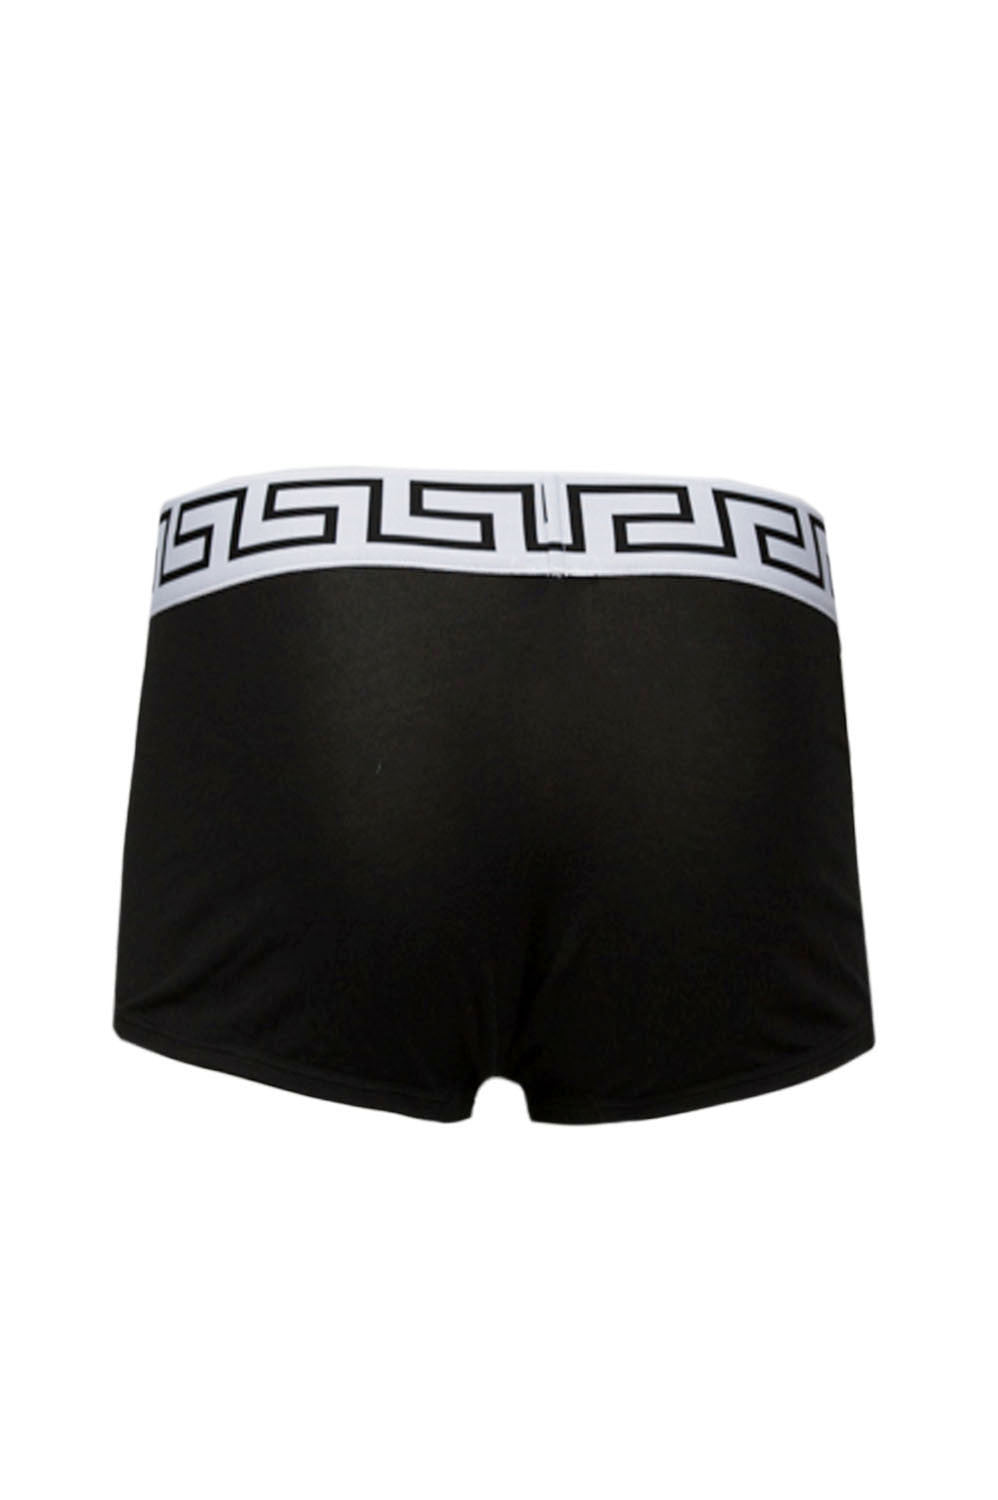 Parigamba Stretch Cotton Black Trunk